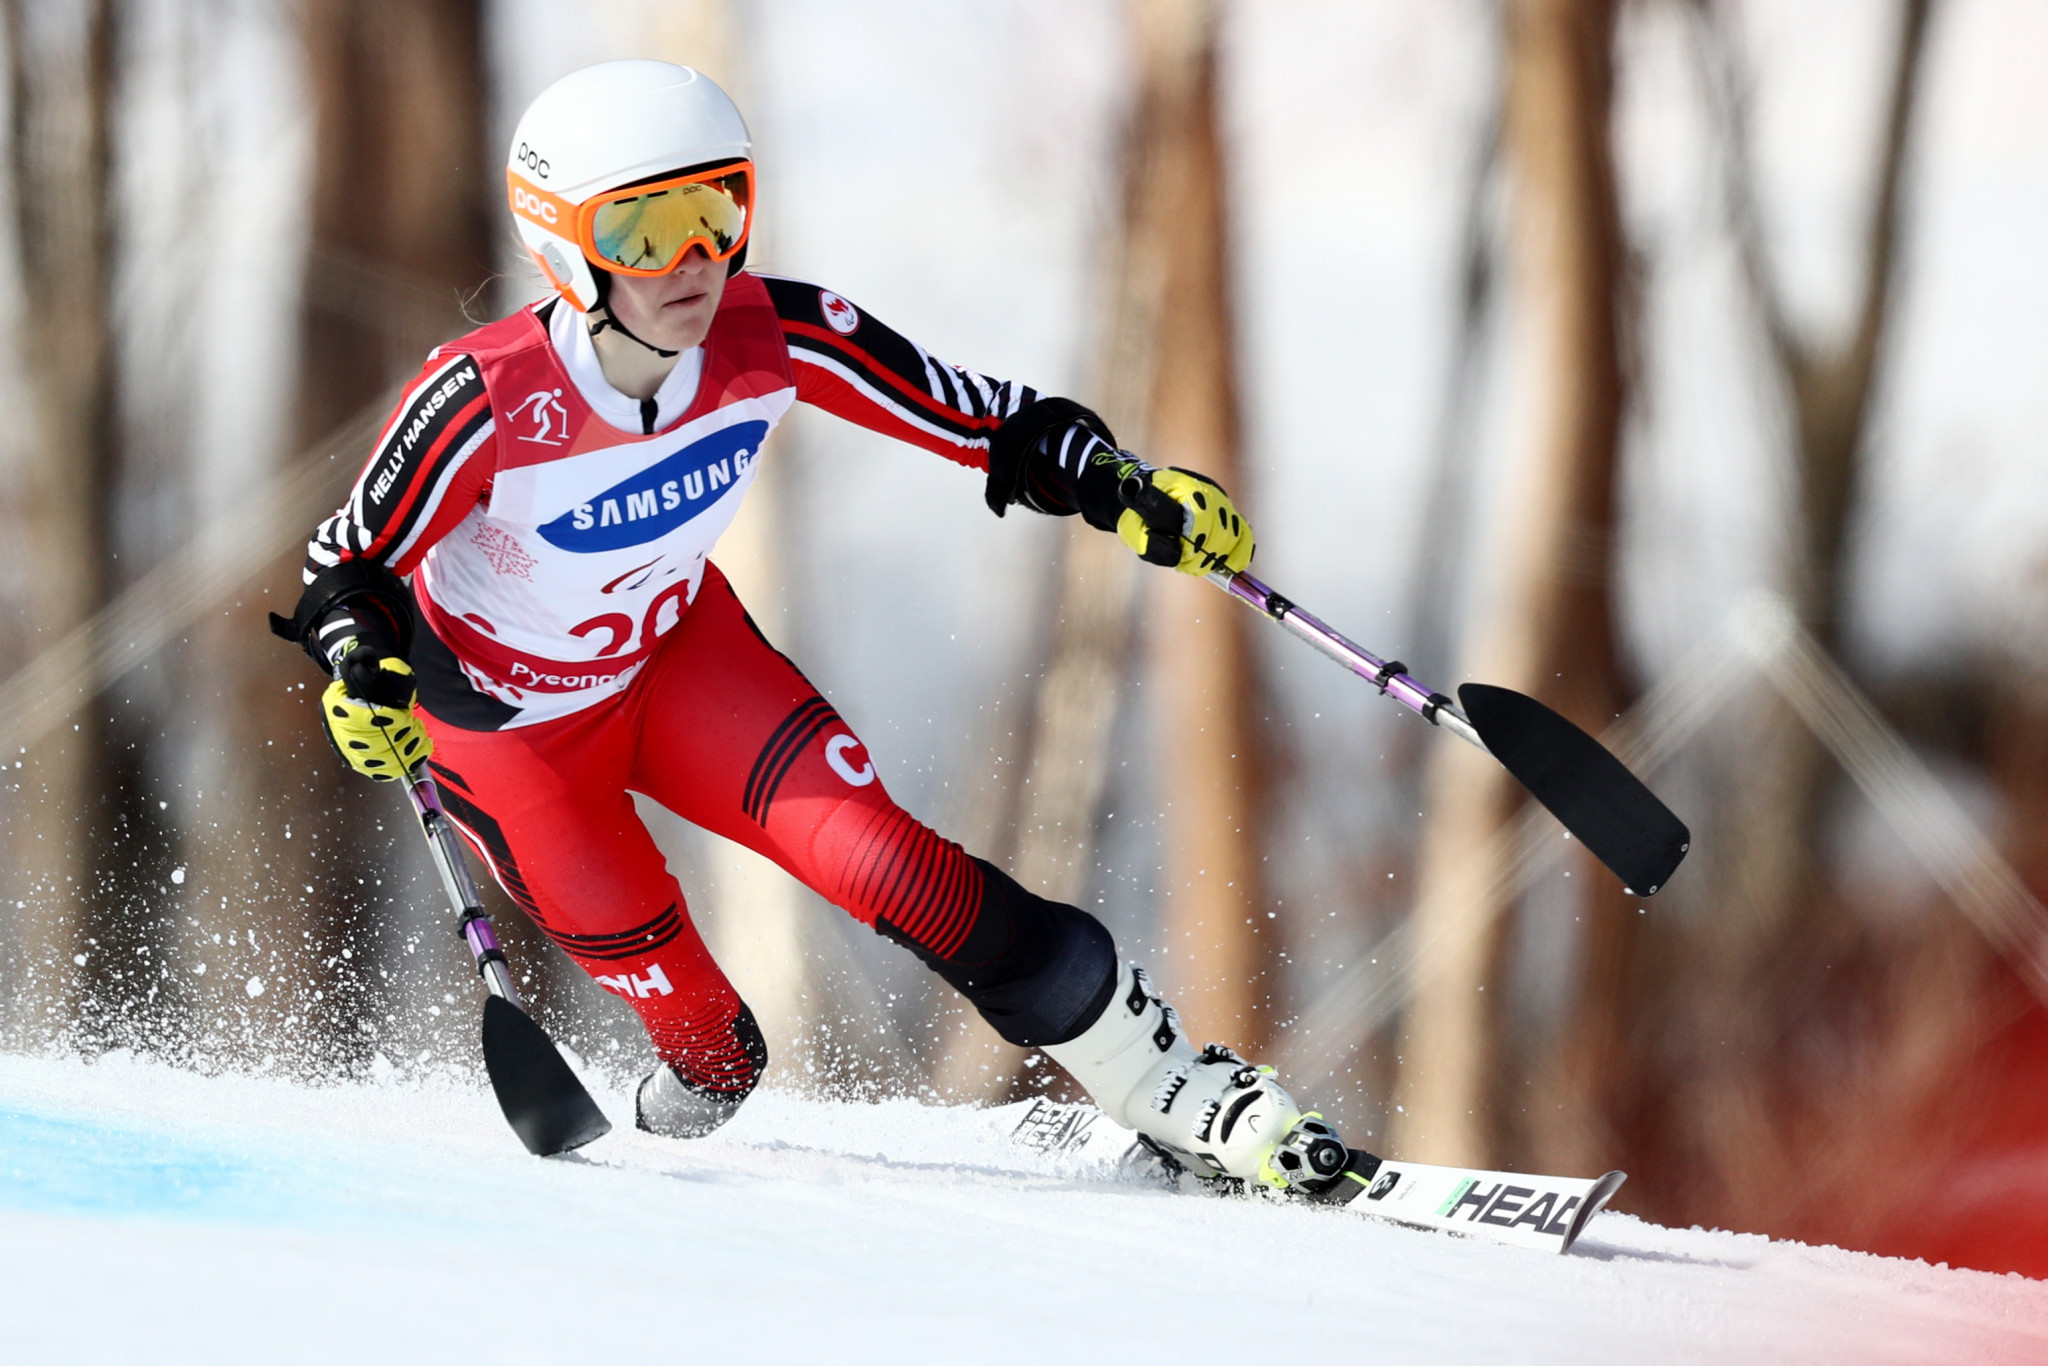 Canada's Frederique Turgeon came second in the vote after winning three medals at the World Para Alpine Skiing Championships shortly after the death of his father ©Getty Images